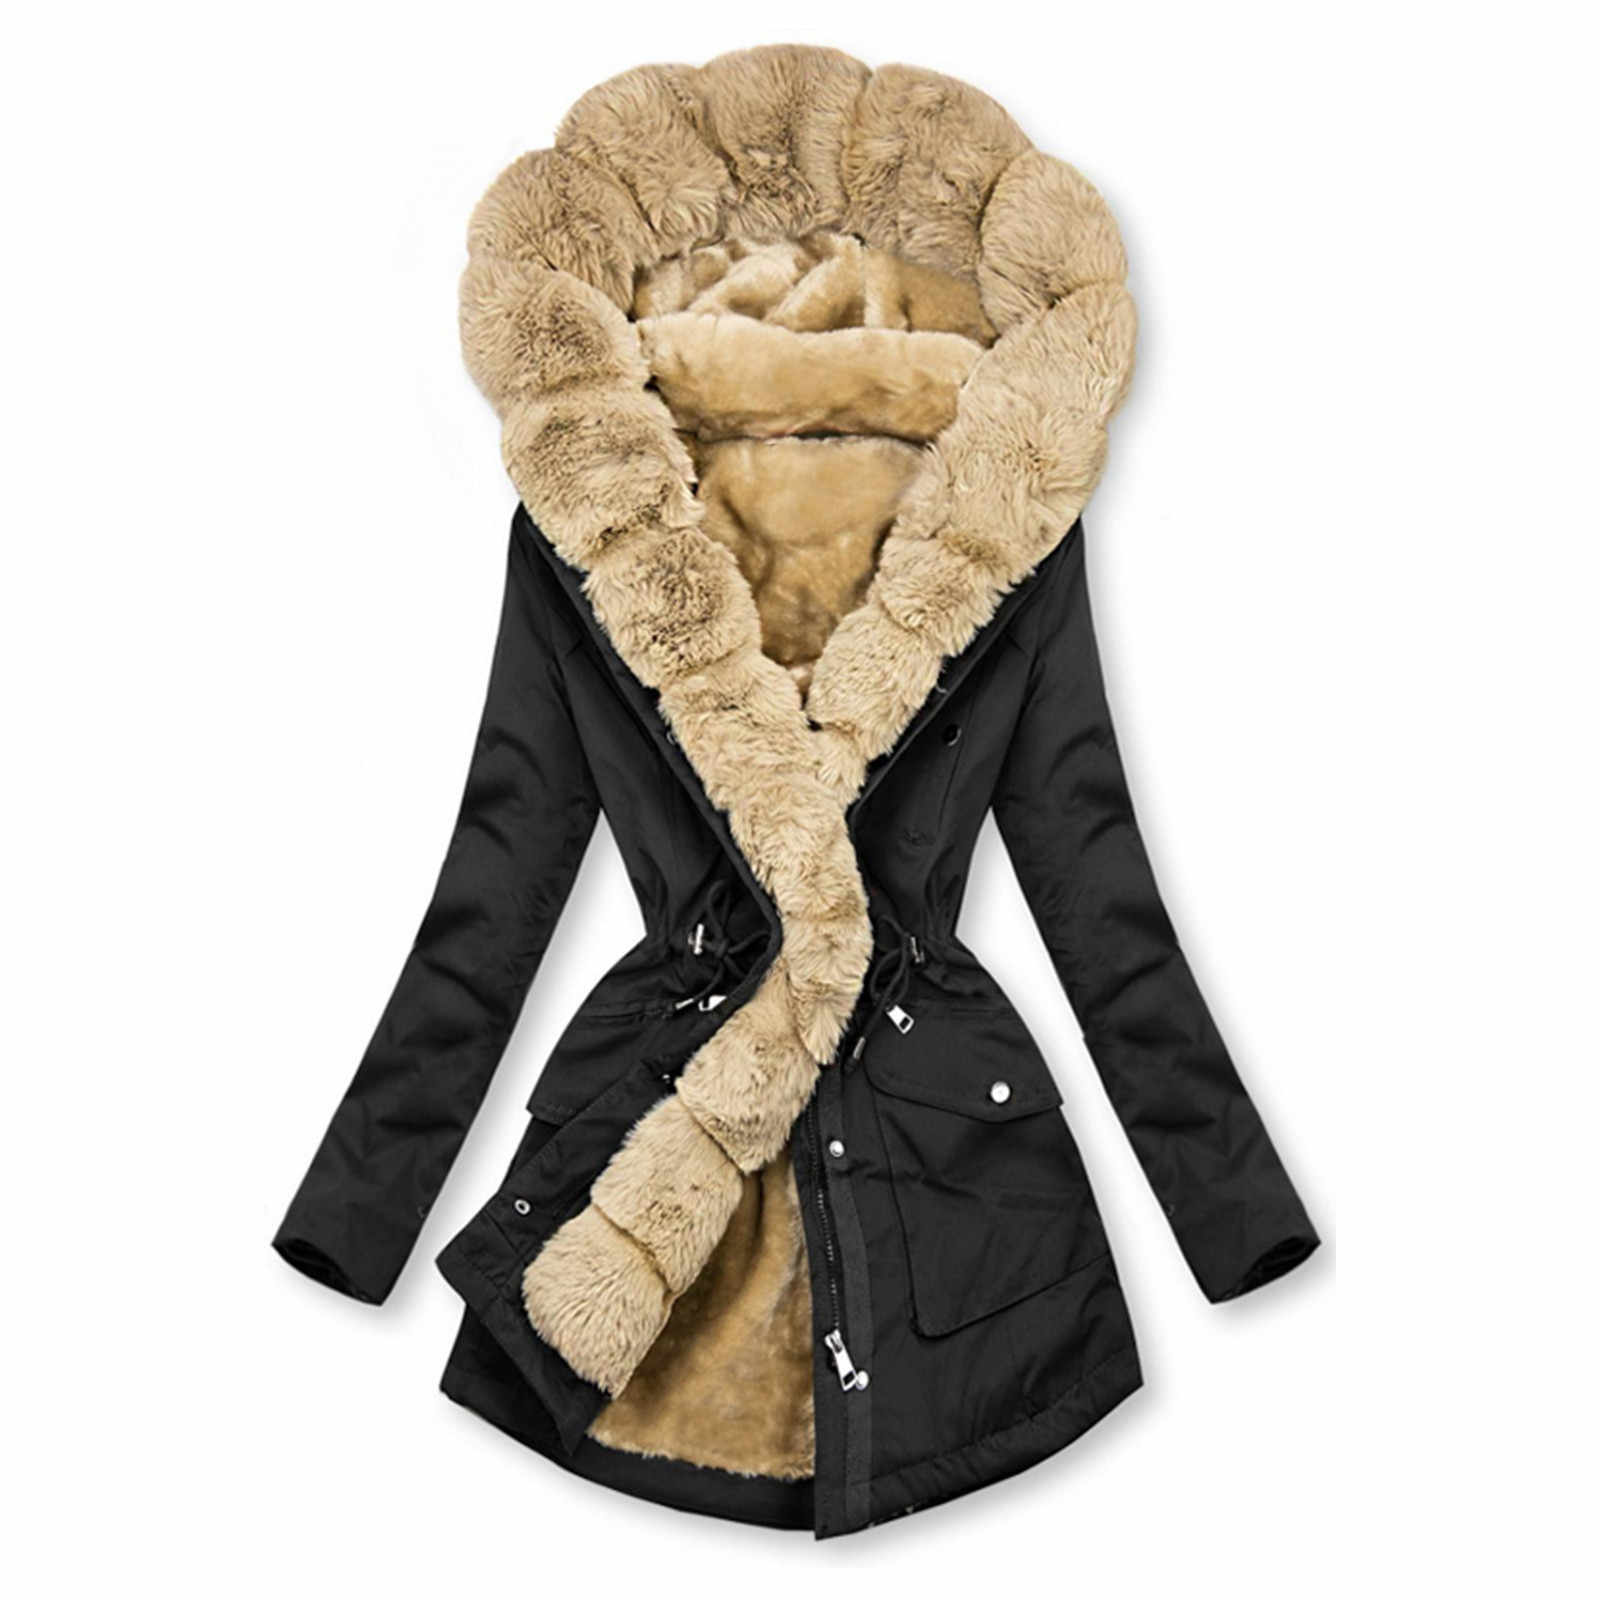 Women Warm Winter Long Sleeve Solid Color Hooded Cotton Faux Fur Lined Padded Coat Outerwear Jacket